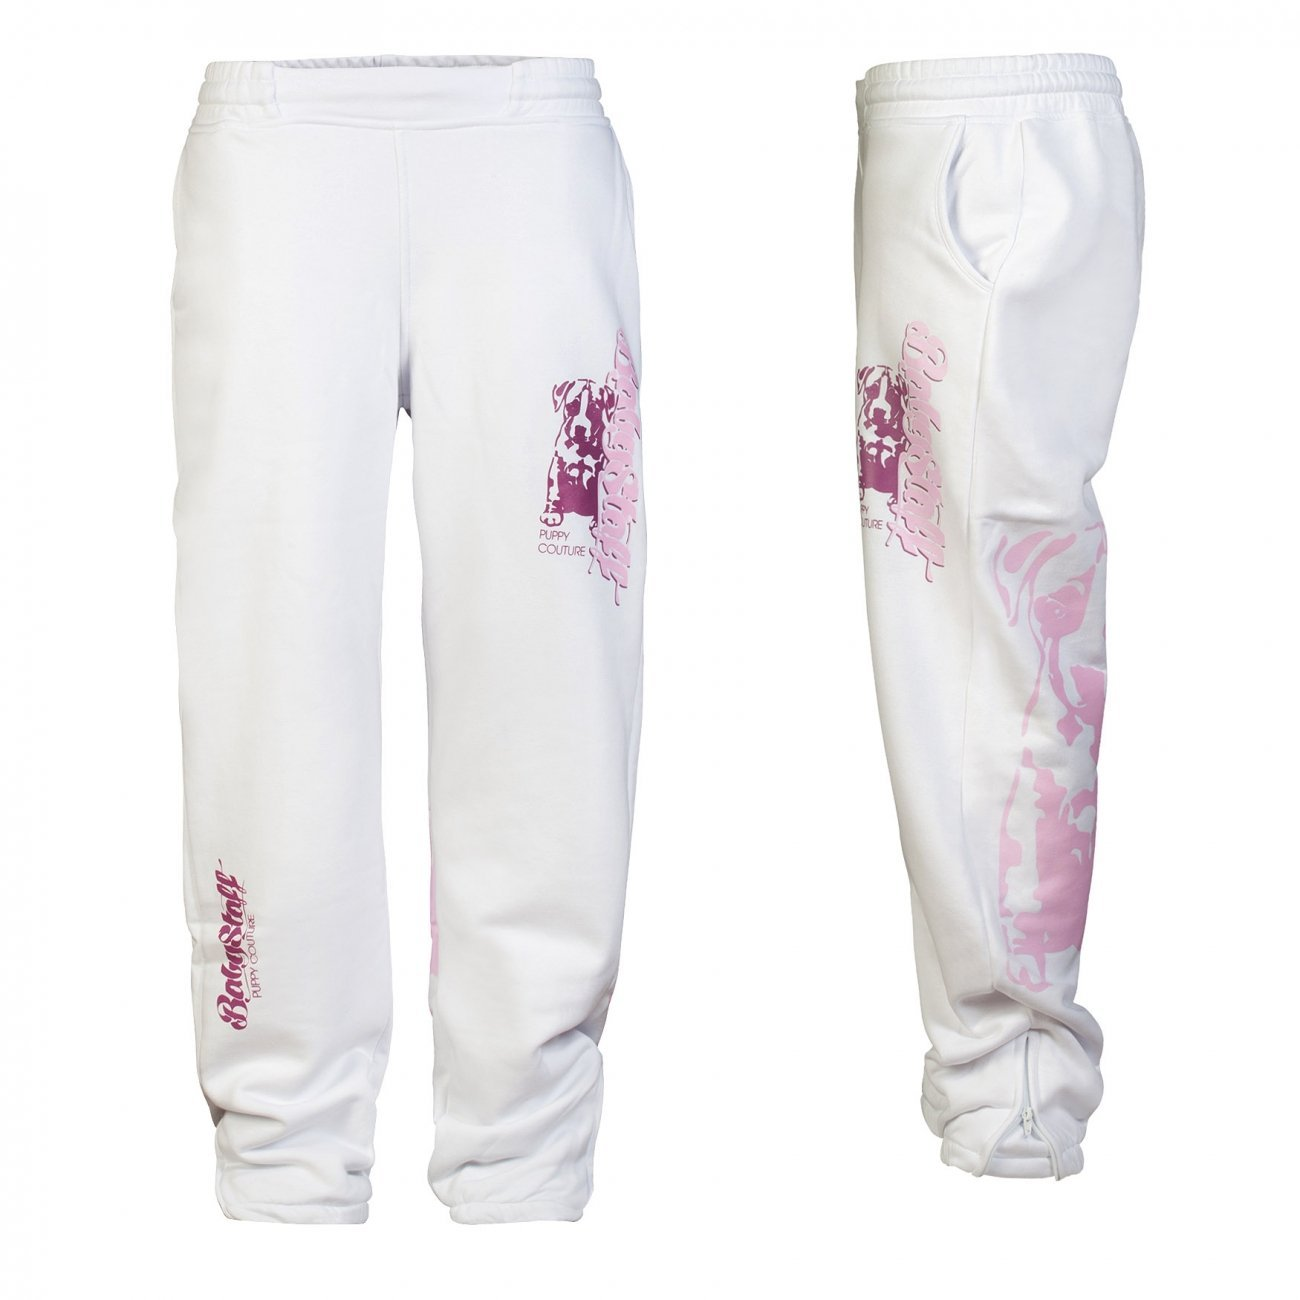 Babystaff Merah Sweatpants - weiss hos Stillo